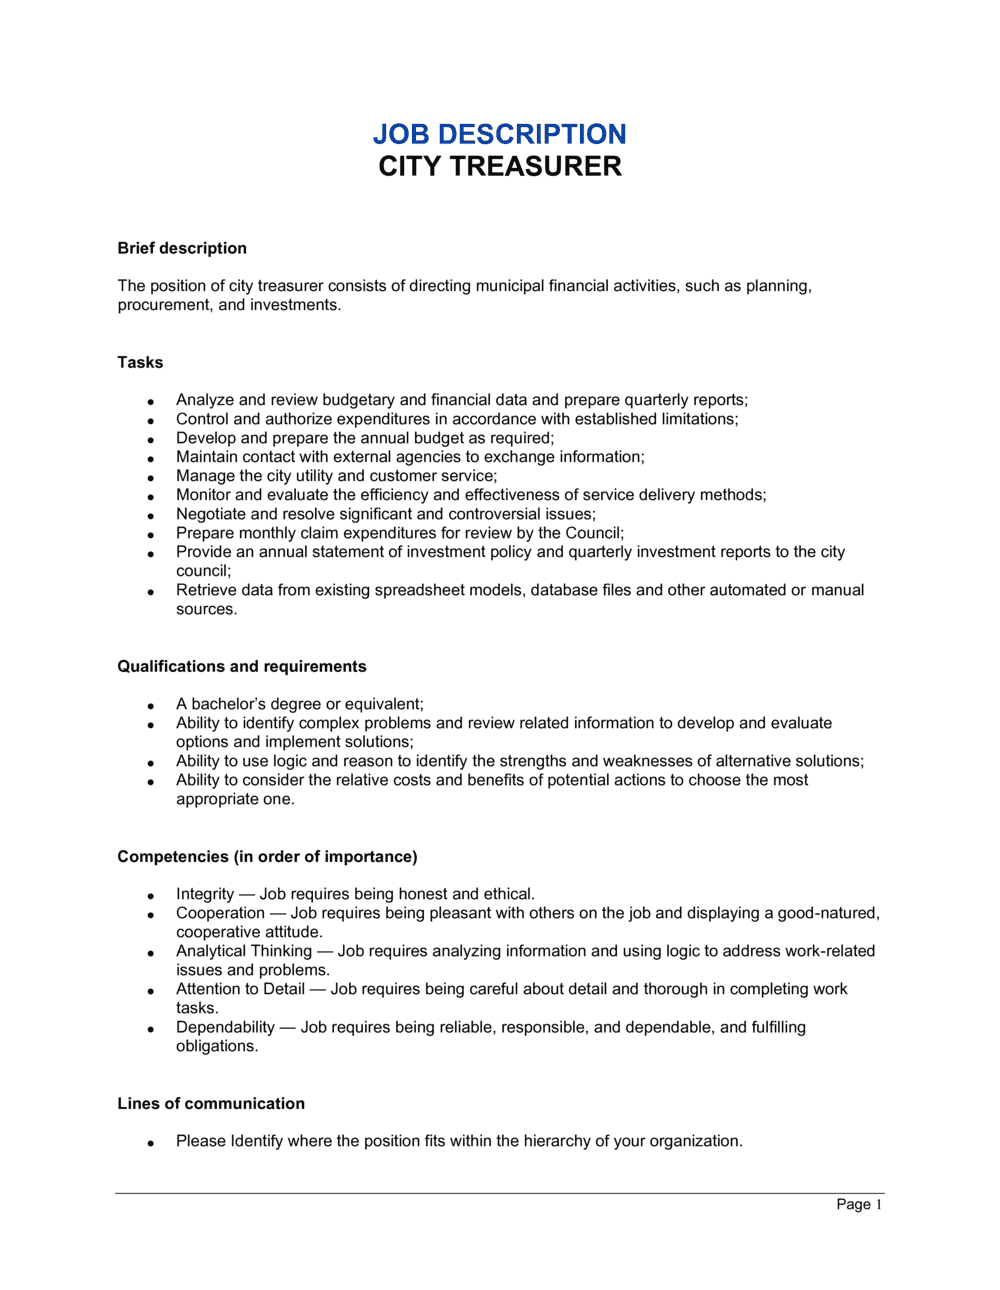 Business-in-a-Box's City Treasurer Job Description Template